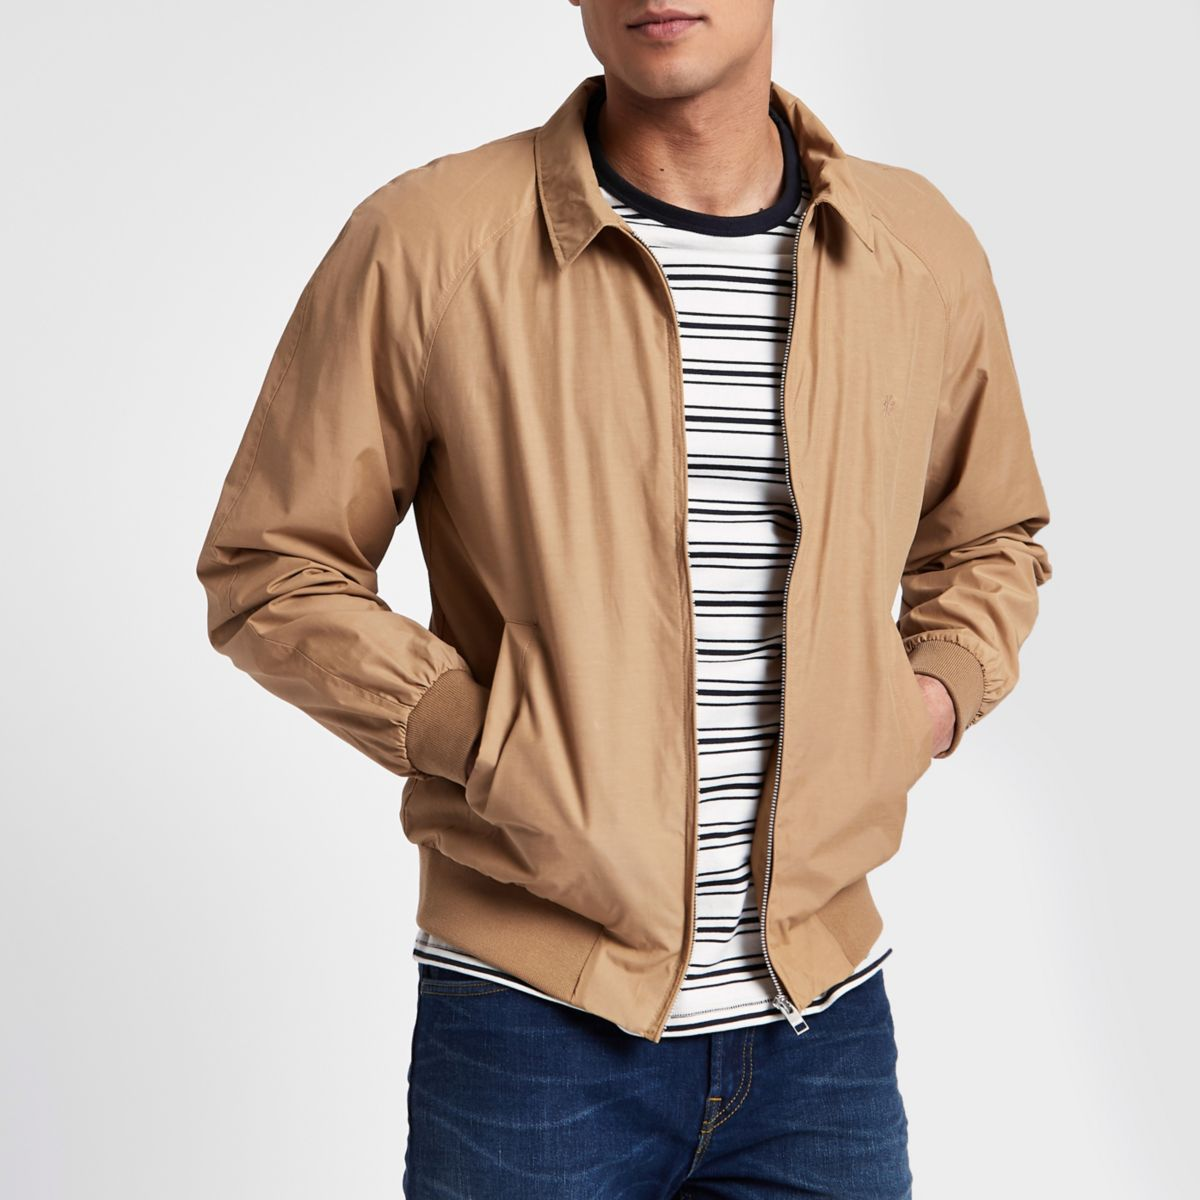 Jack & Jones tan harrington jacket